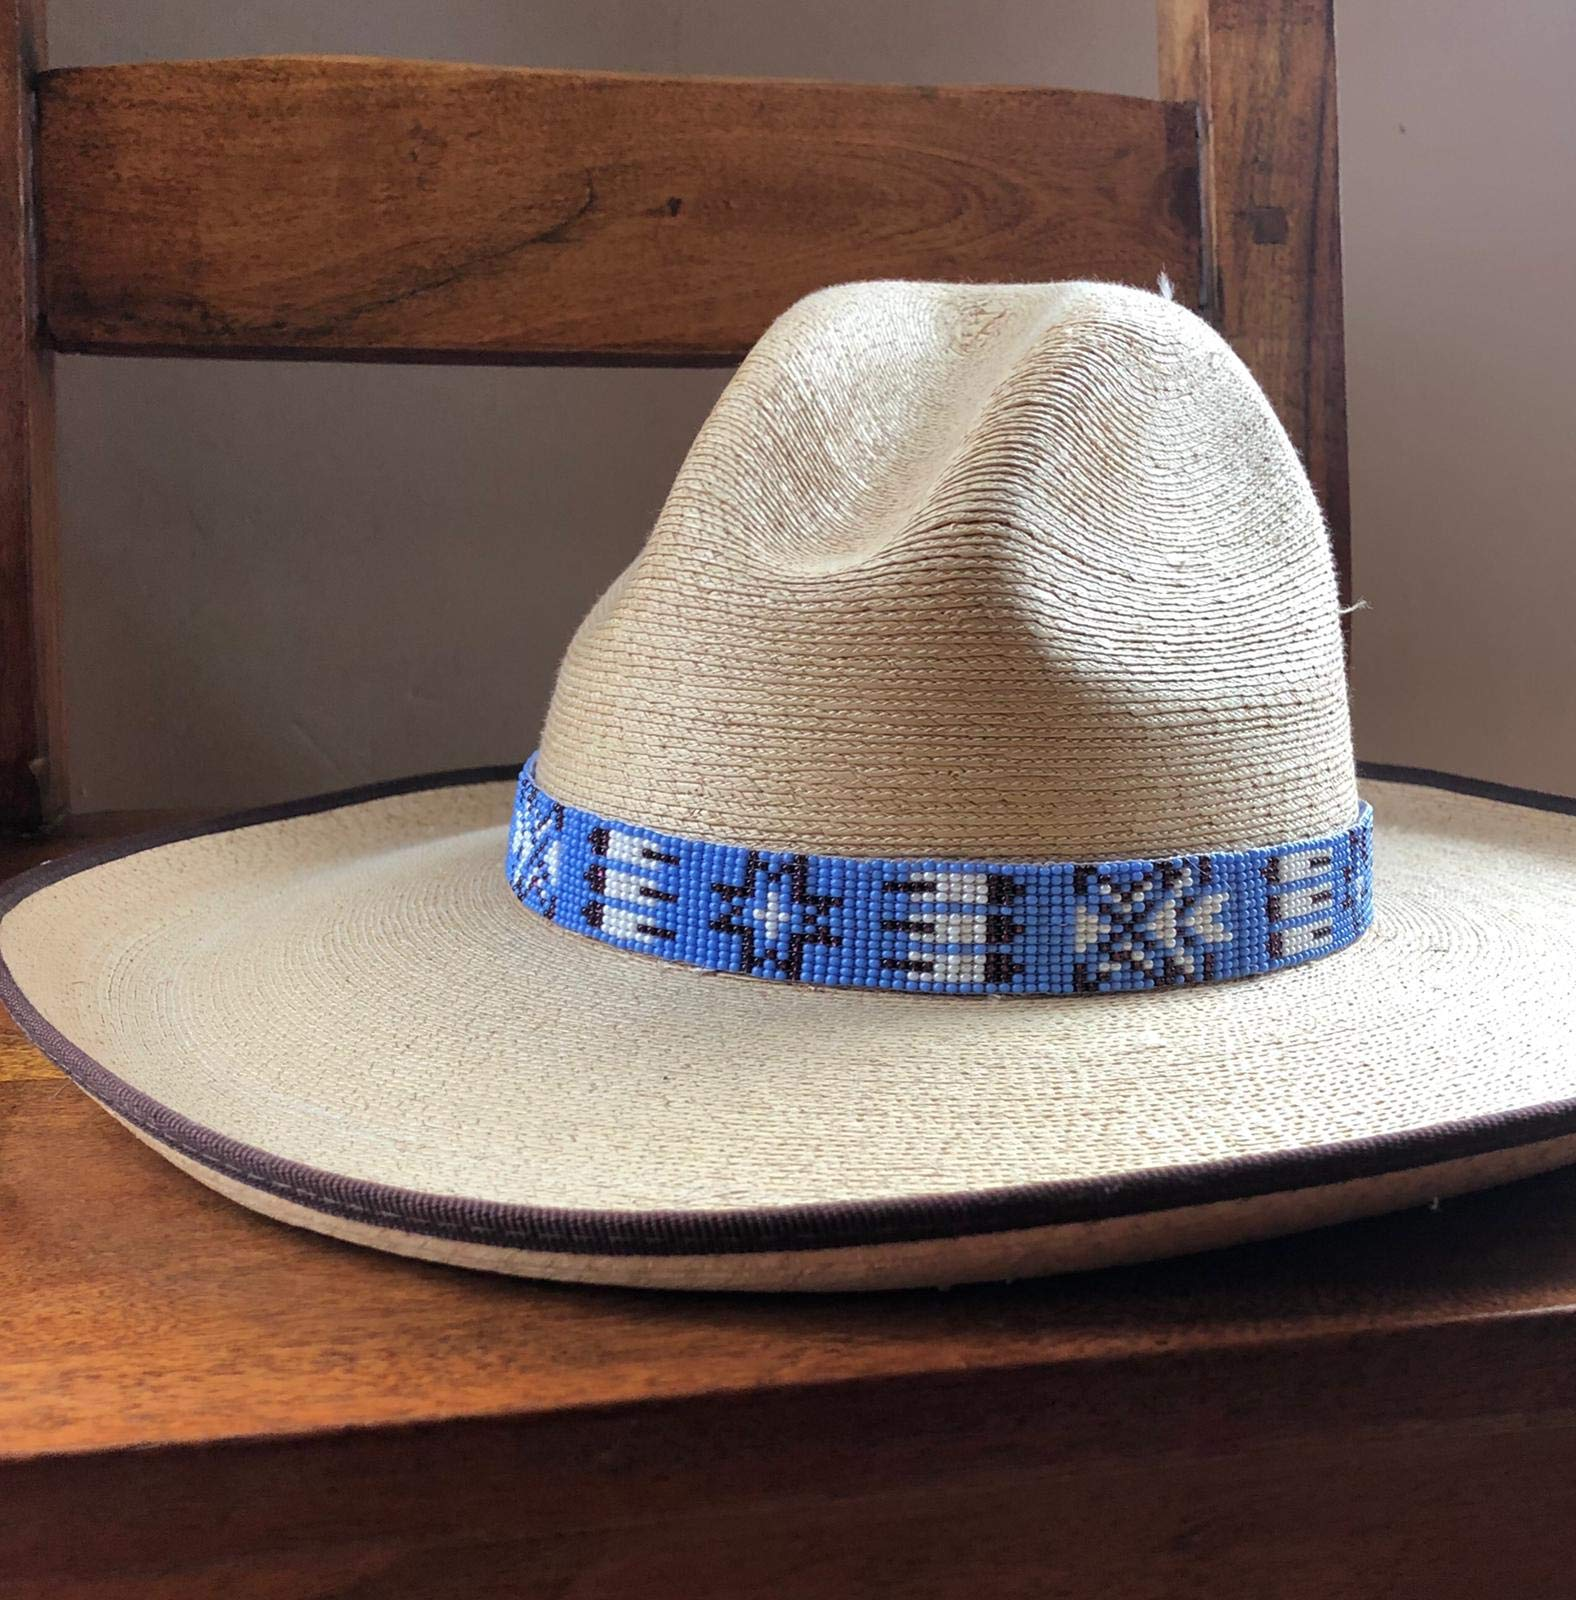 Mayan Arts Hat Band, Hatbands for Men and Women, Leather Straps, Cowboy Beaded Bands, White, Blue Paisley, Handmade in Guatemala 7/8'' X 21'' by Mayan Arts (Image #2)